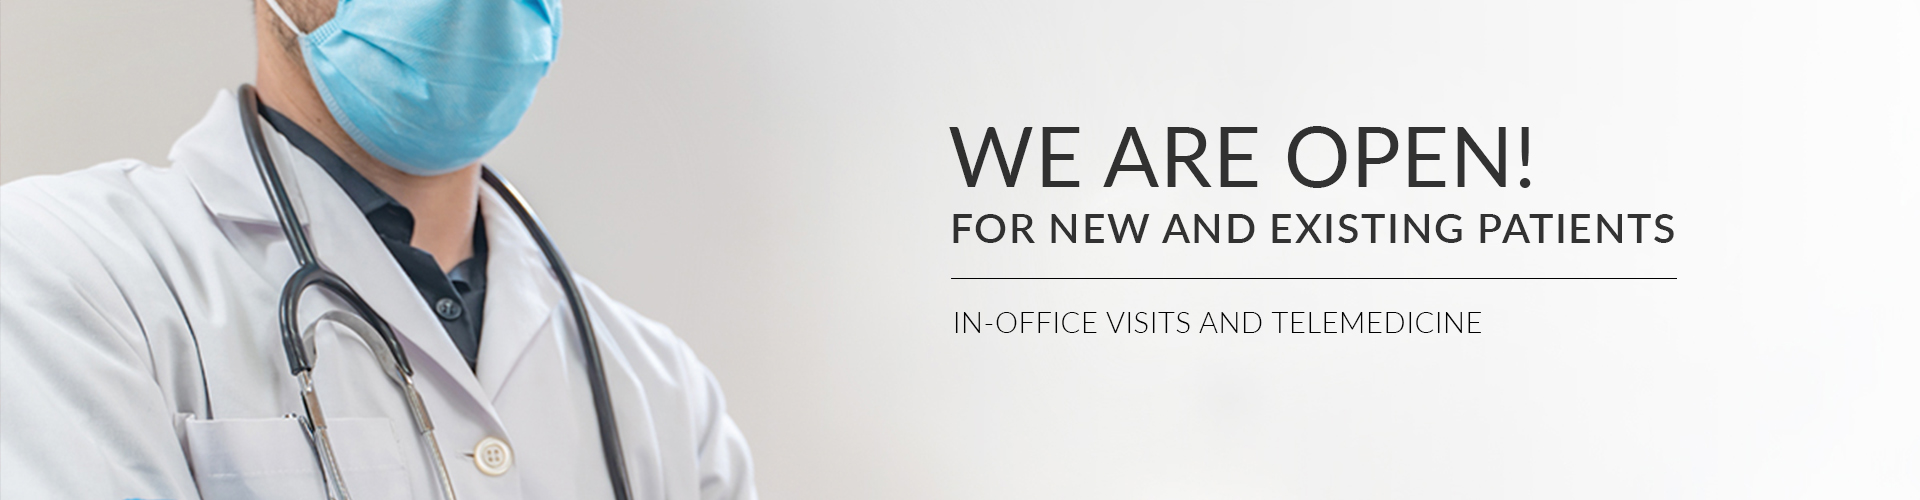 NJ Urology: We Are Open - In-Office Visits and Telehealth